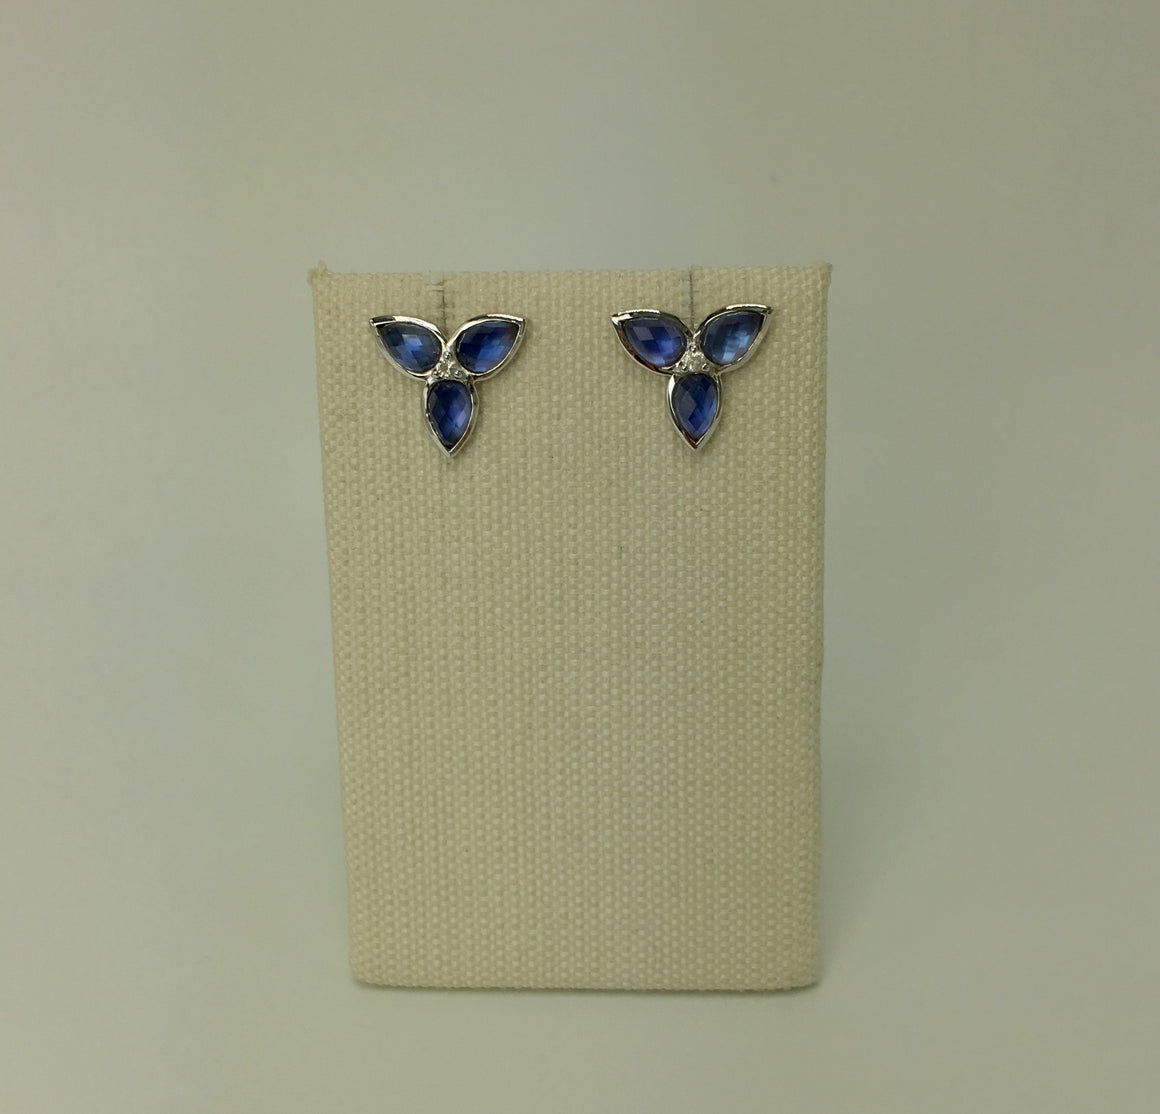 Mariposa Repose Post Earrings in Created London Blue Sapphire in Silver